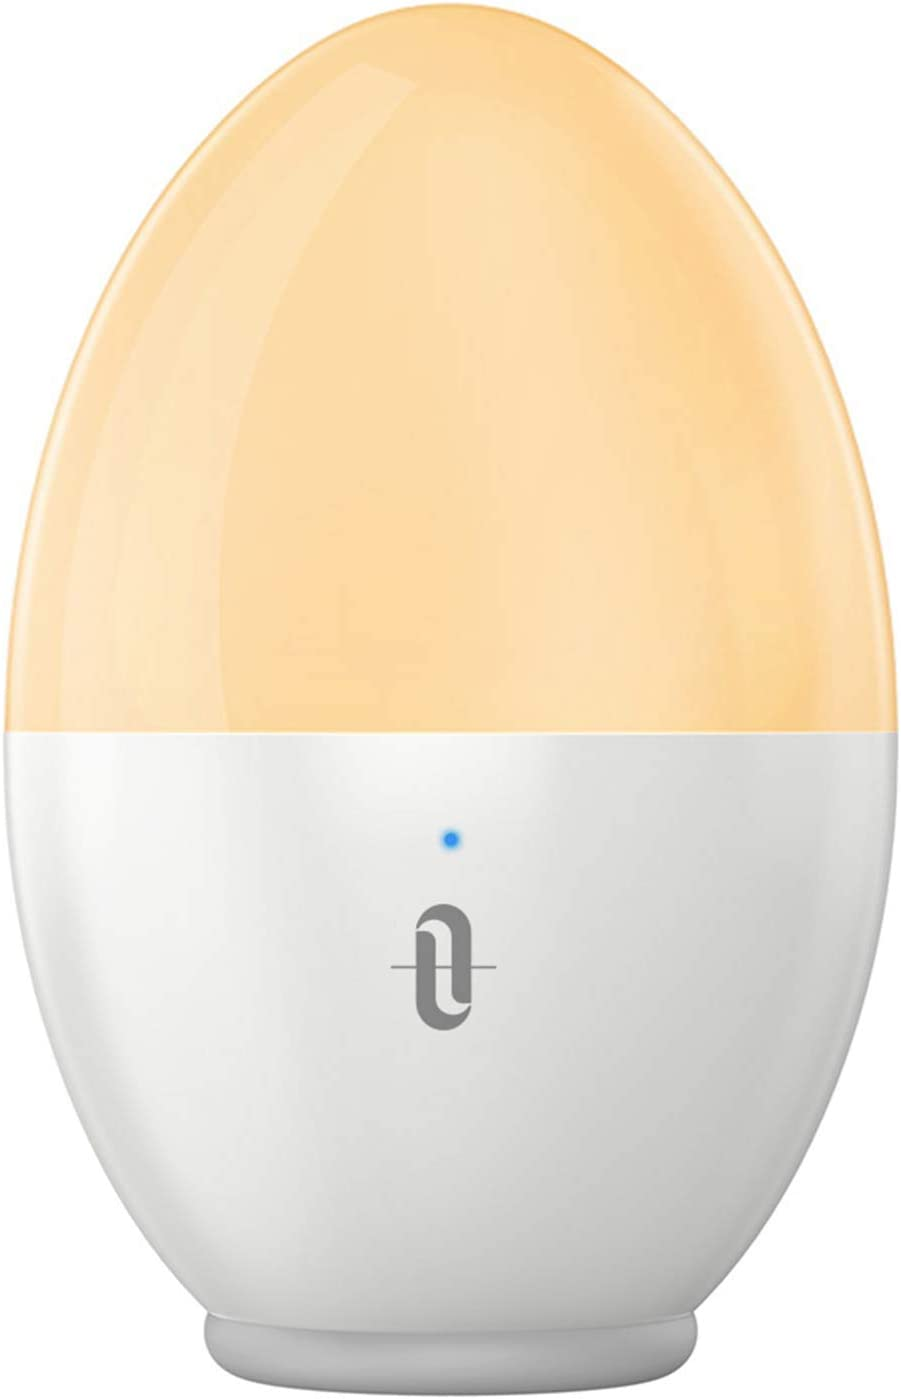 Best Night Light for Toddler and Baby